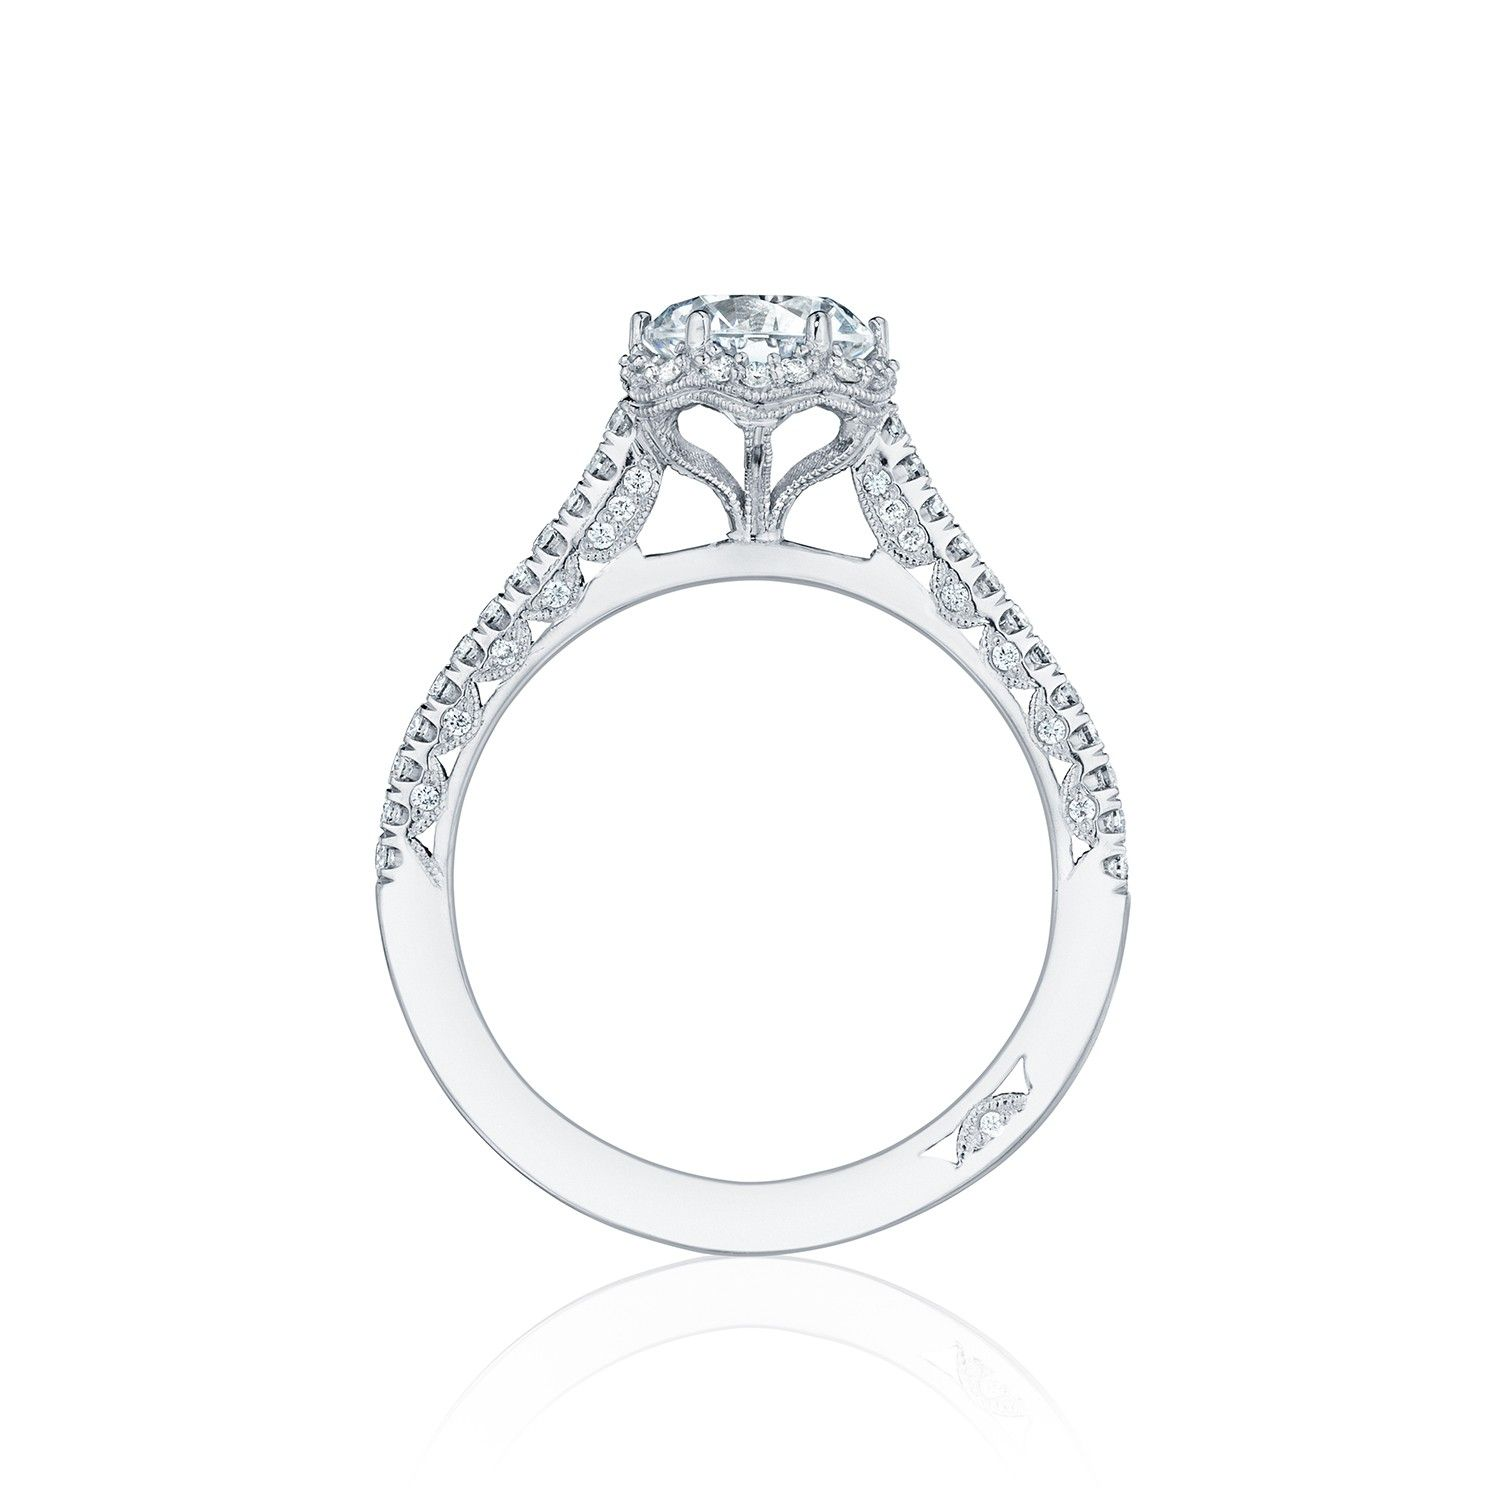 Delicate and dainty, this diamond engagement ring is